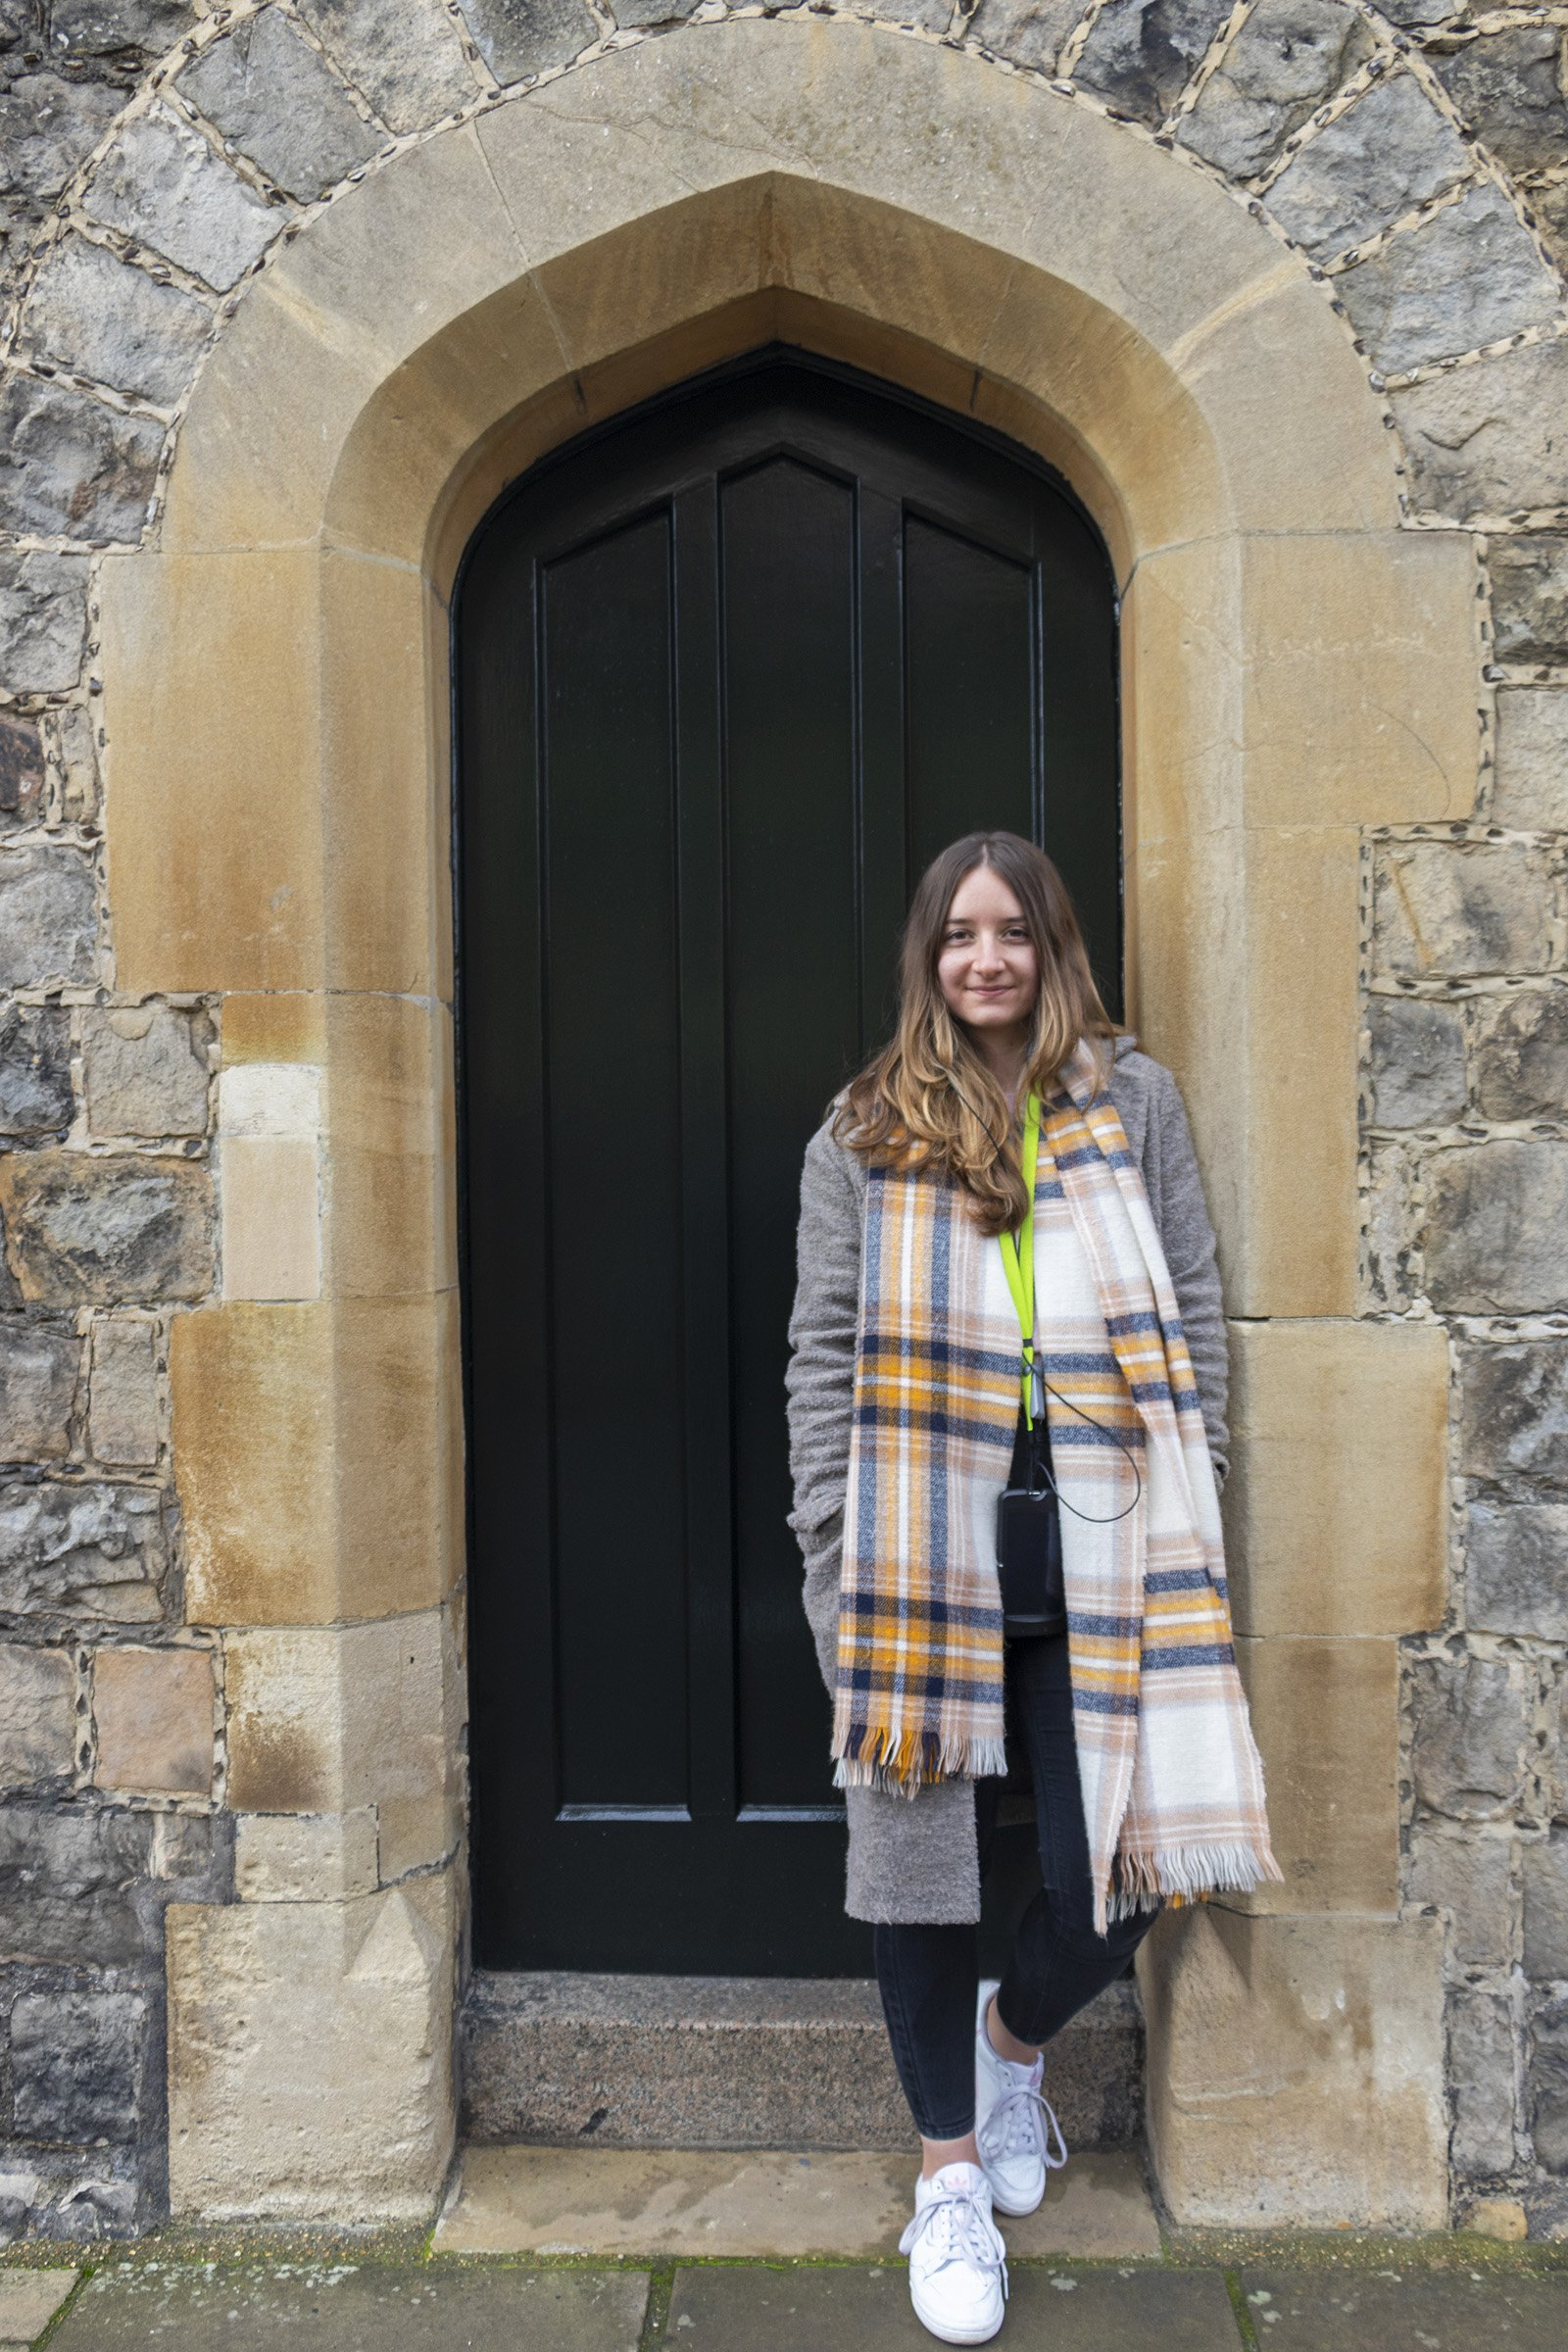 Standing in doorway in Windsor Castle